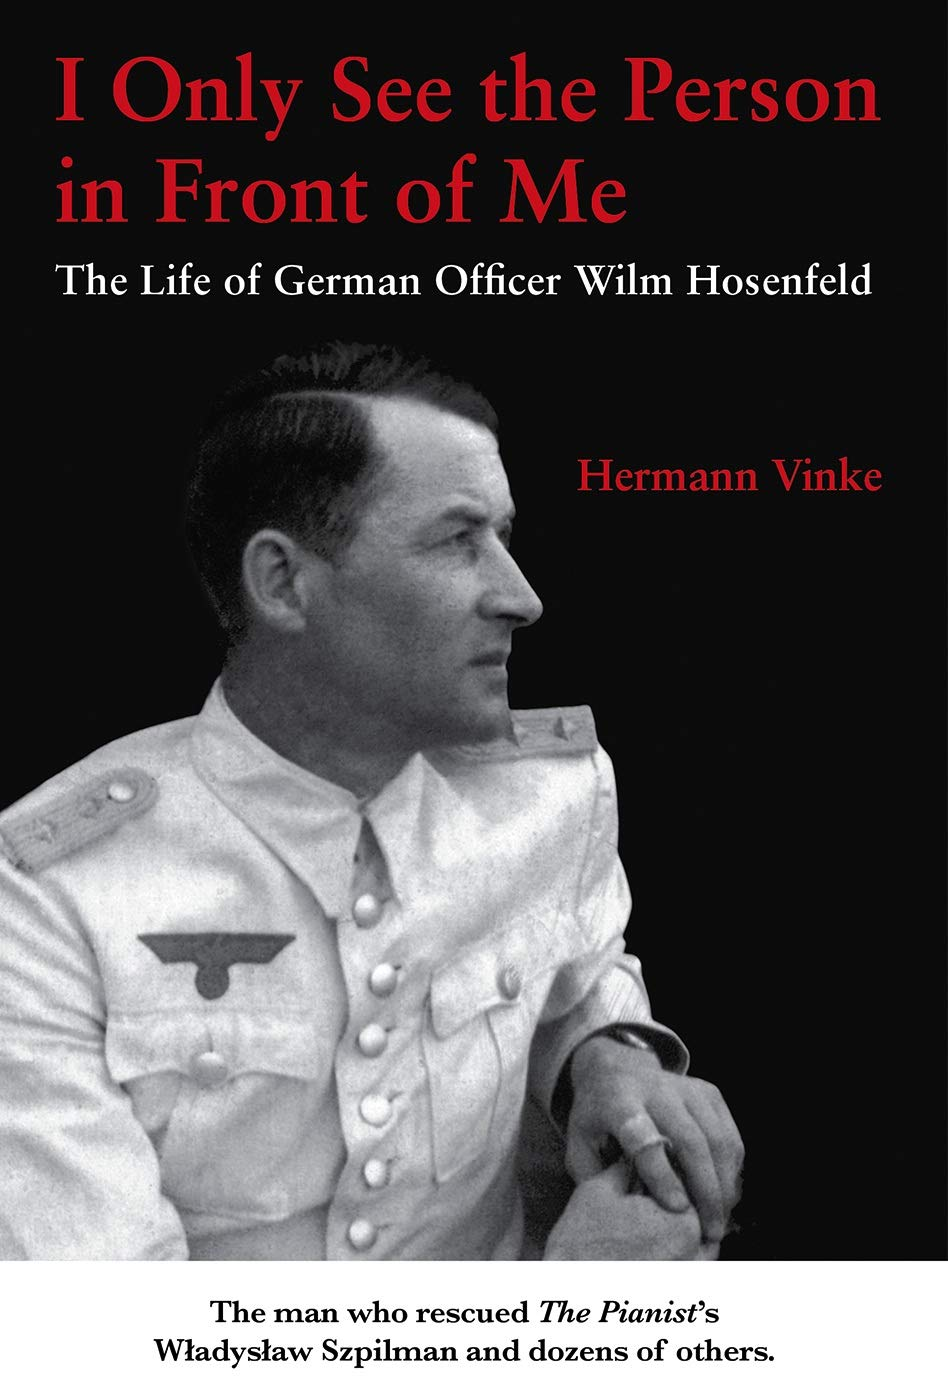 Image result for I Only See the Person in Front of Me: The Life of German Officer Wilm Hosenfeld""